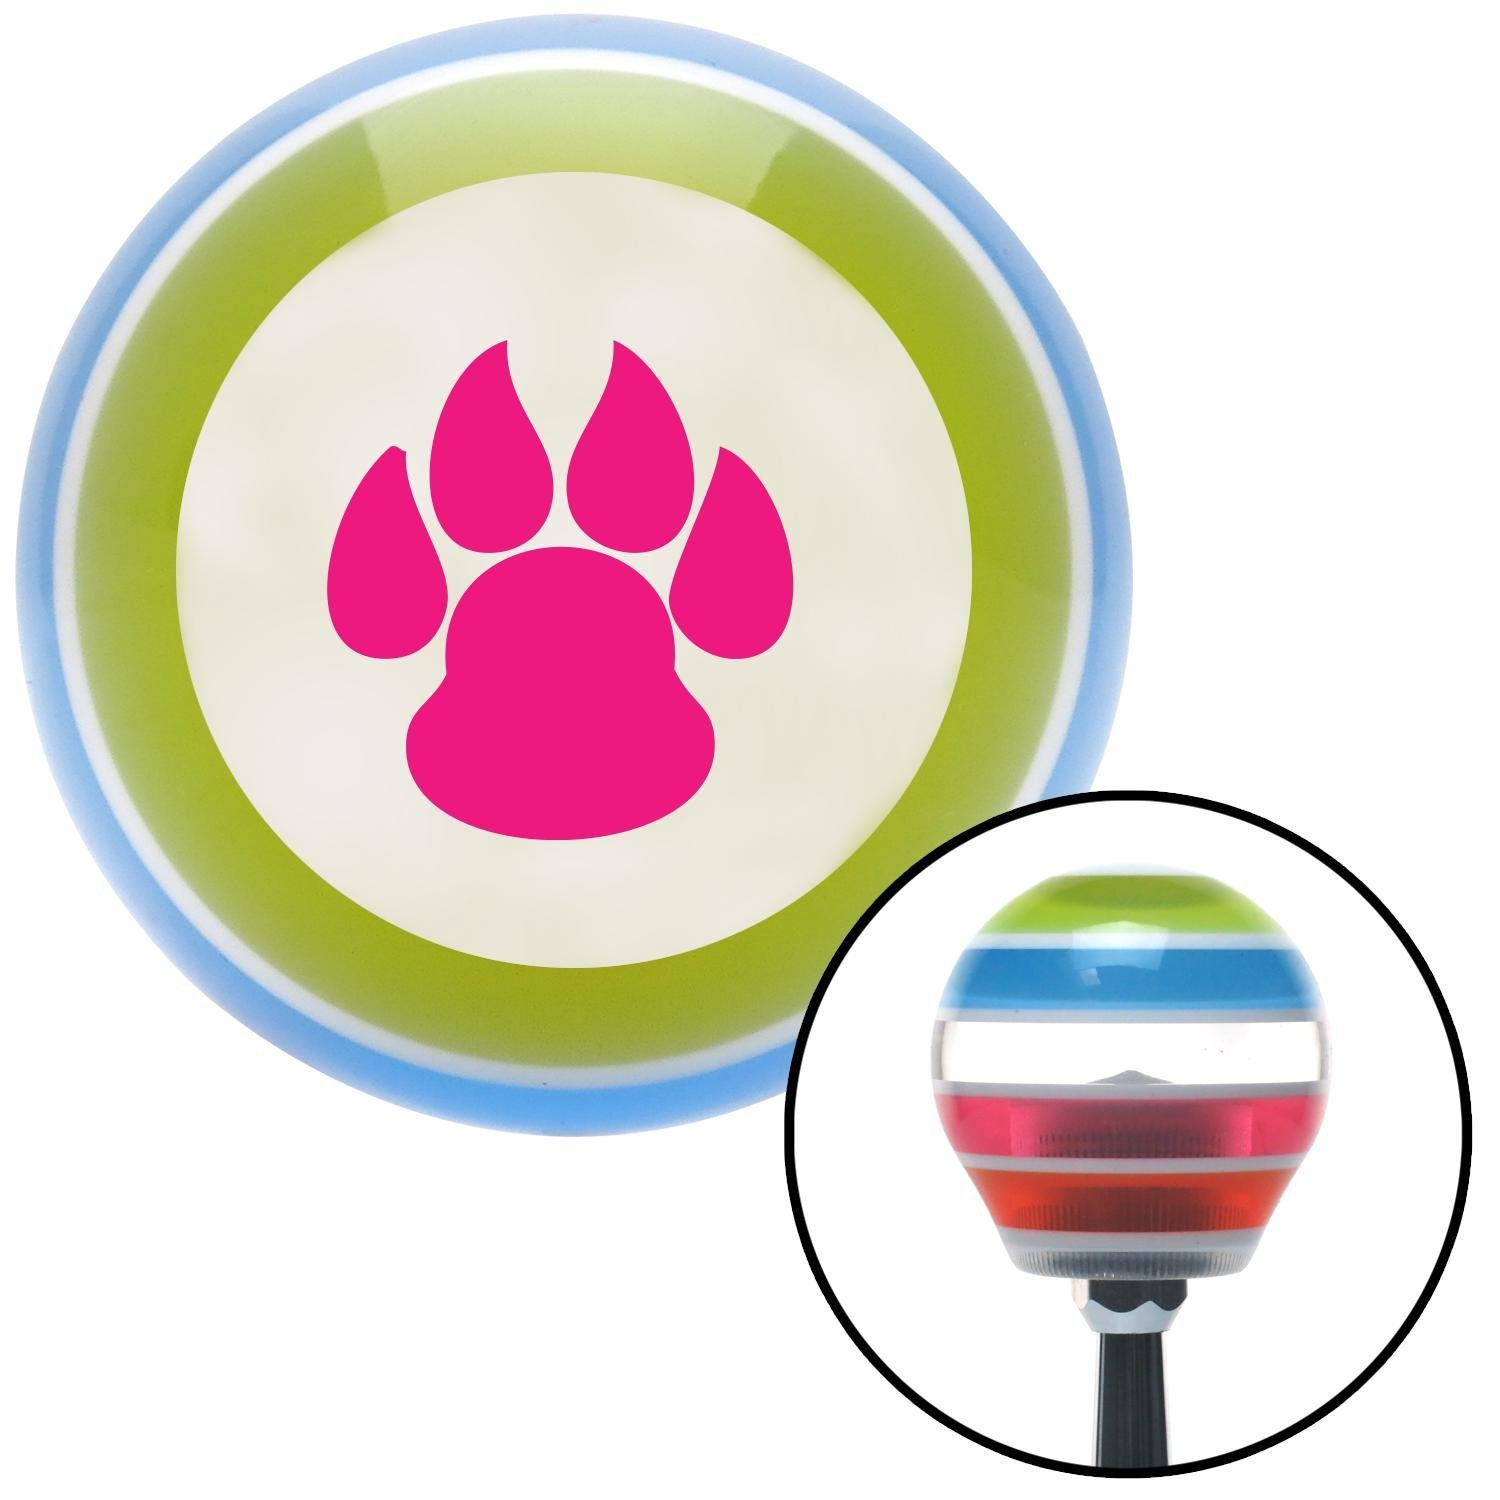 Pink Pawprint Sharp American Shifter 130712 Stripe Shift Knob with M16 x 1.5 Insert